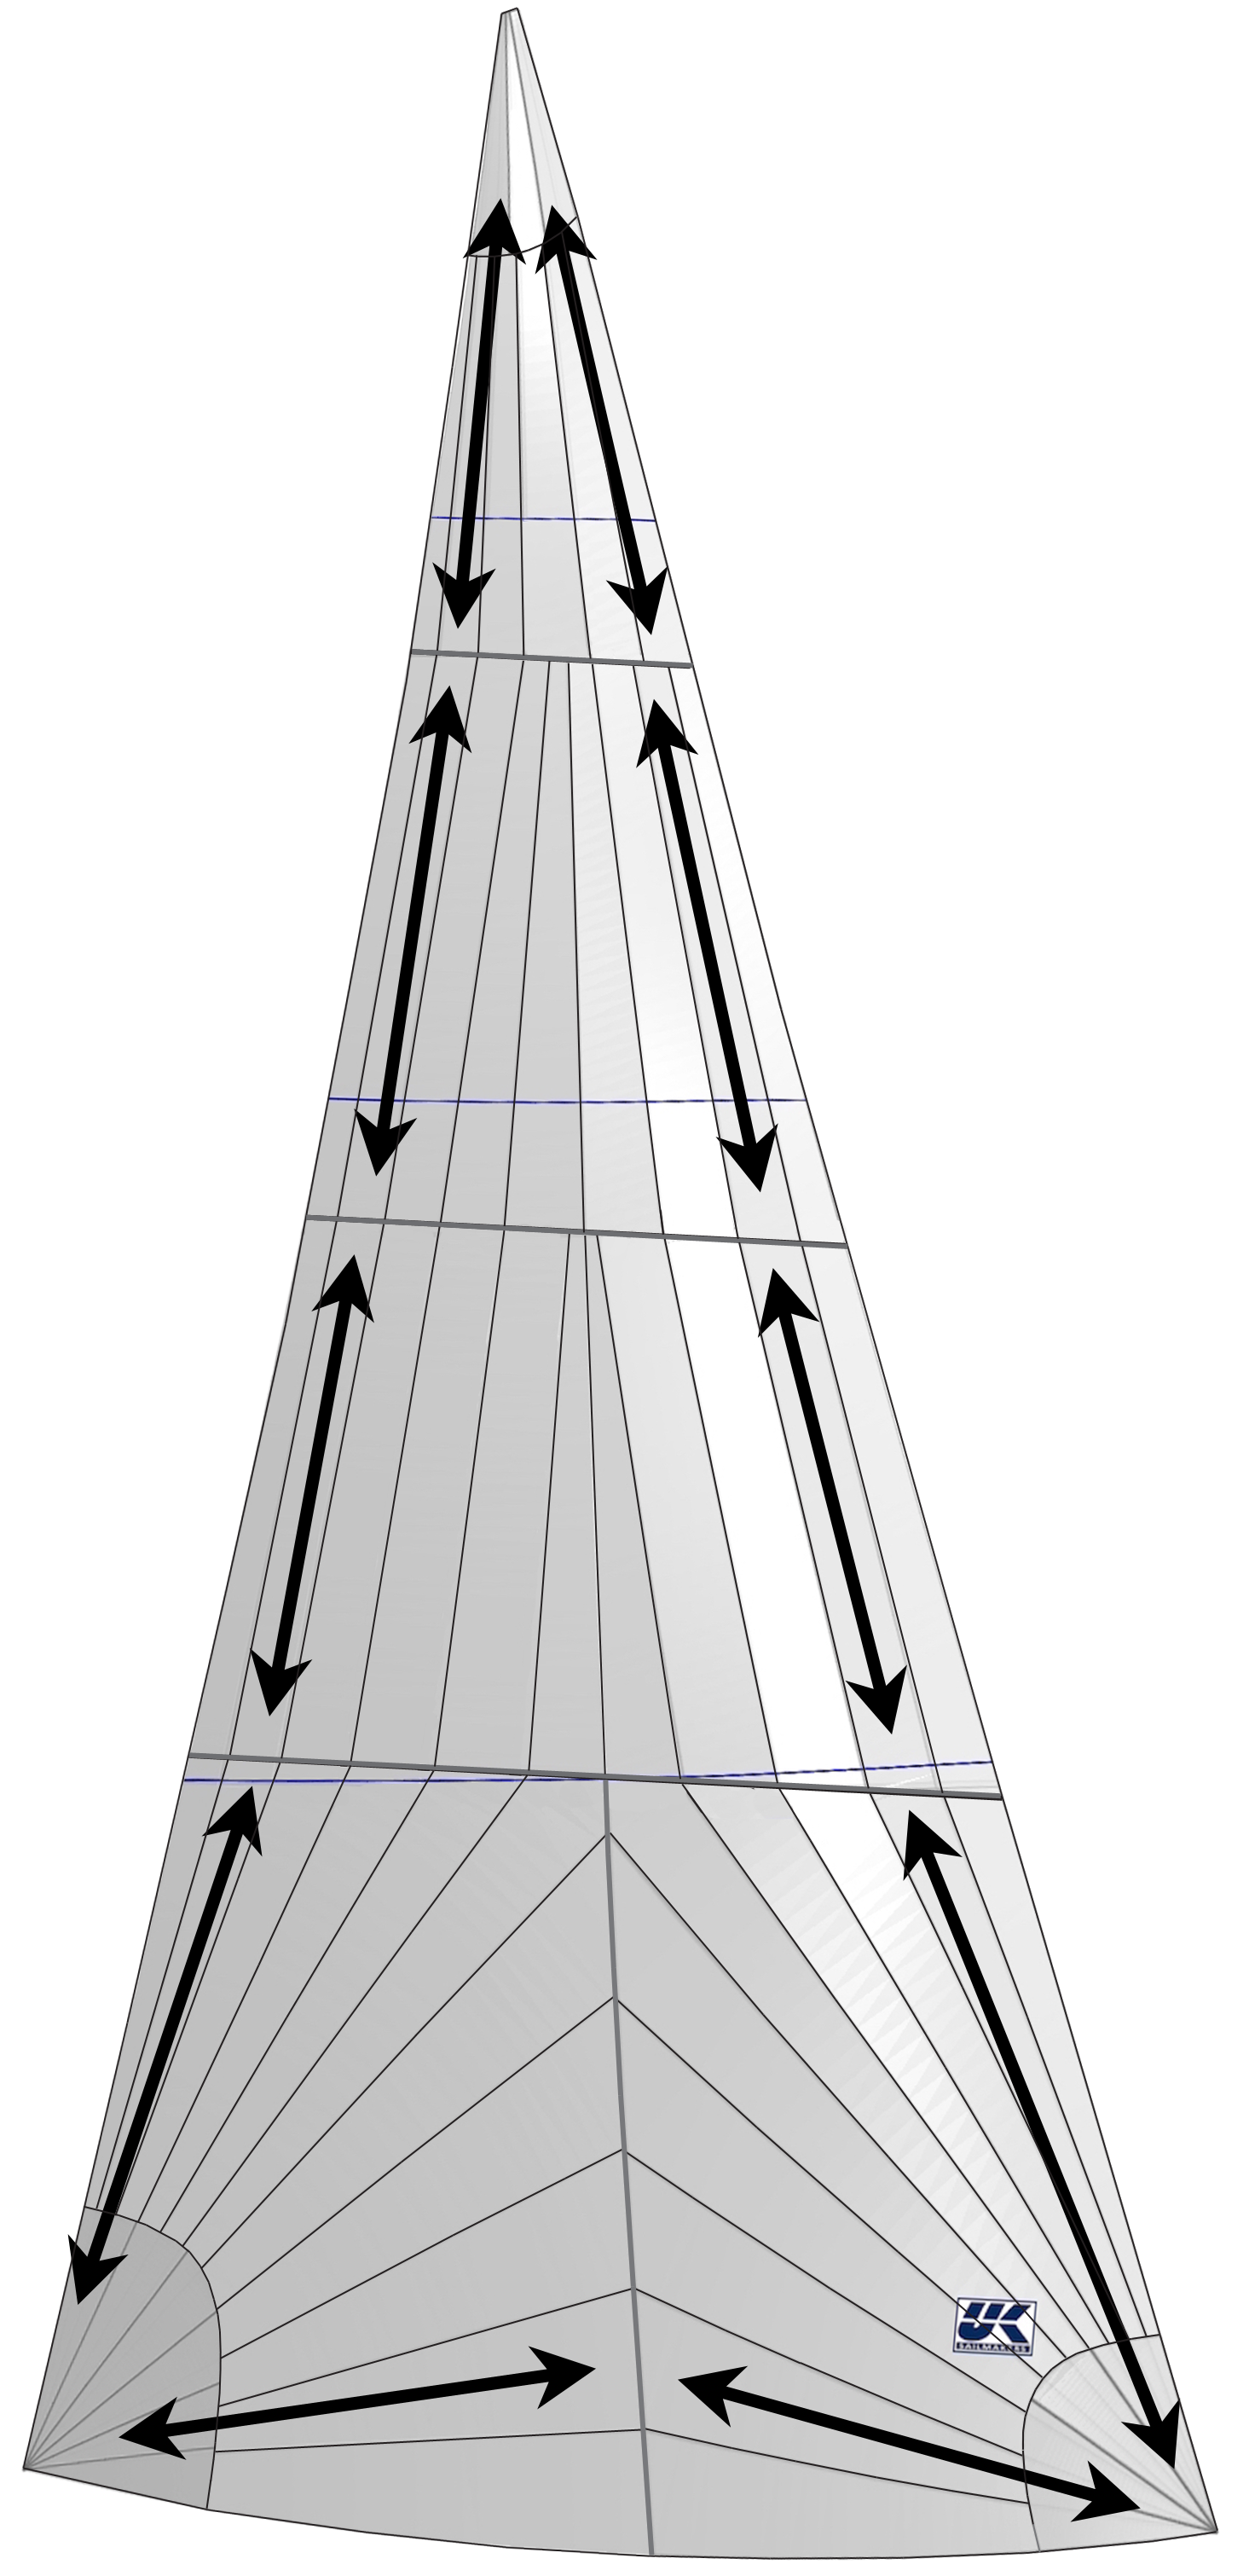 Radial sails attempt to line up the strong warp yarns with the loads that arc between the corners of the sail. Unlike UK Sailmakers' load-path constructions (Tape-Drive, X-Drive and Titanium)the yarns in a tri-radial sail are cut at every seam. This leads to distortions at the seams.